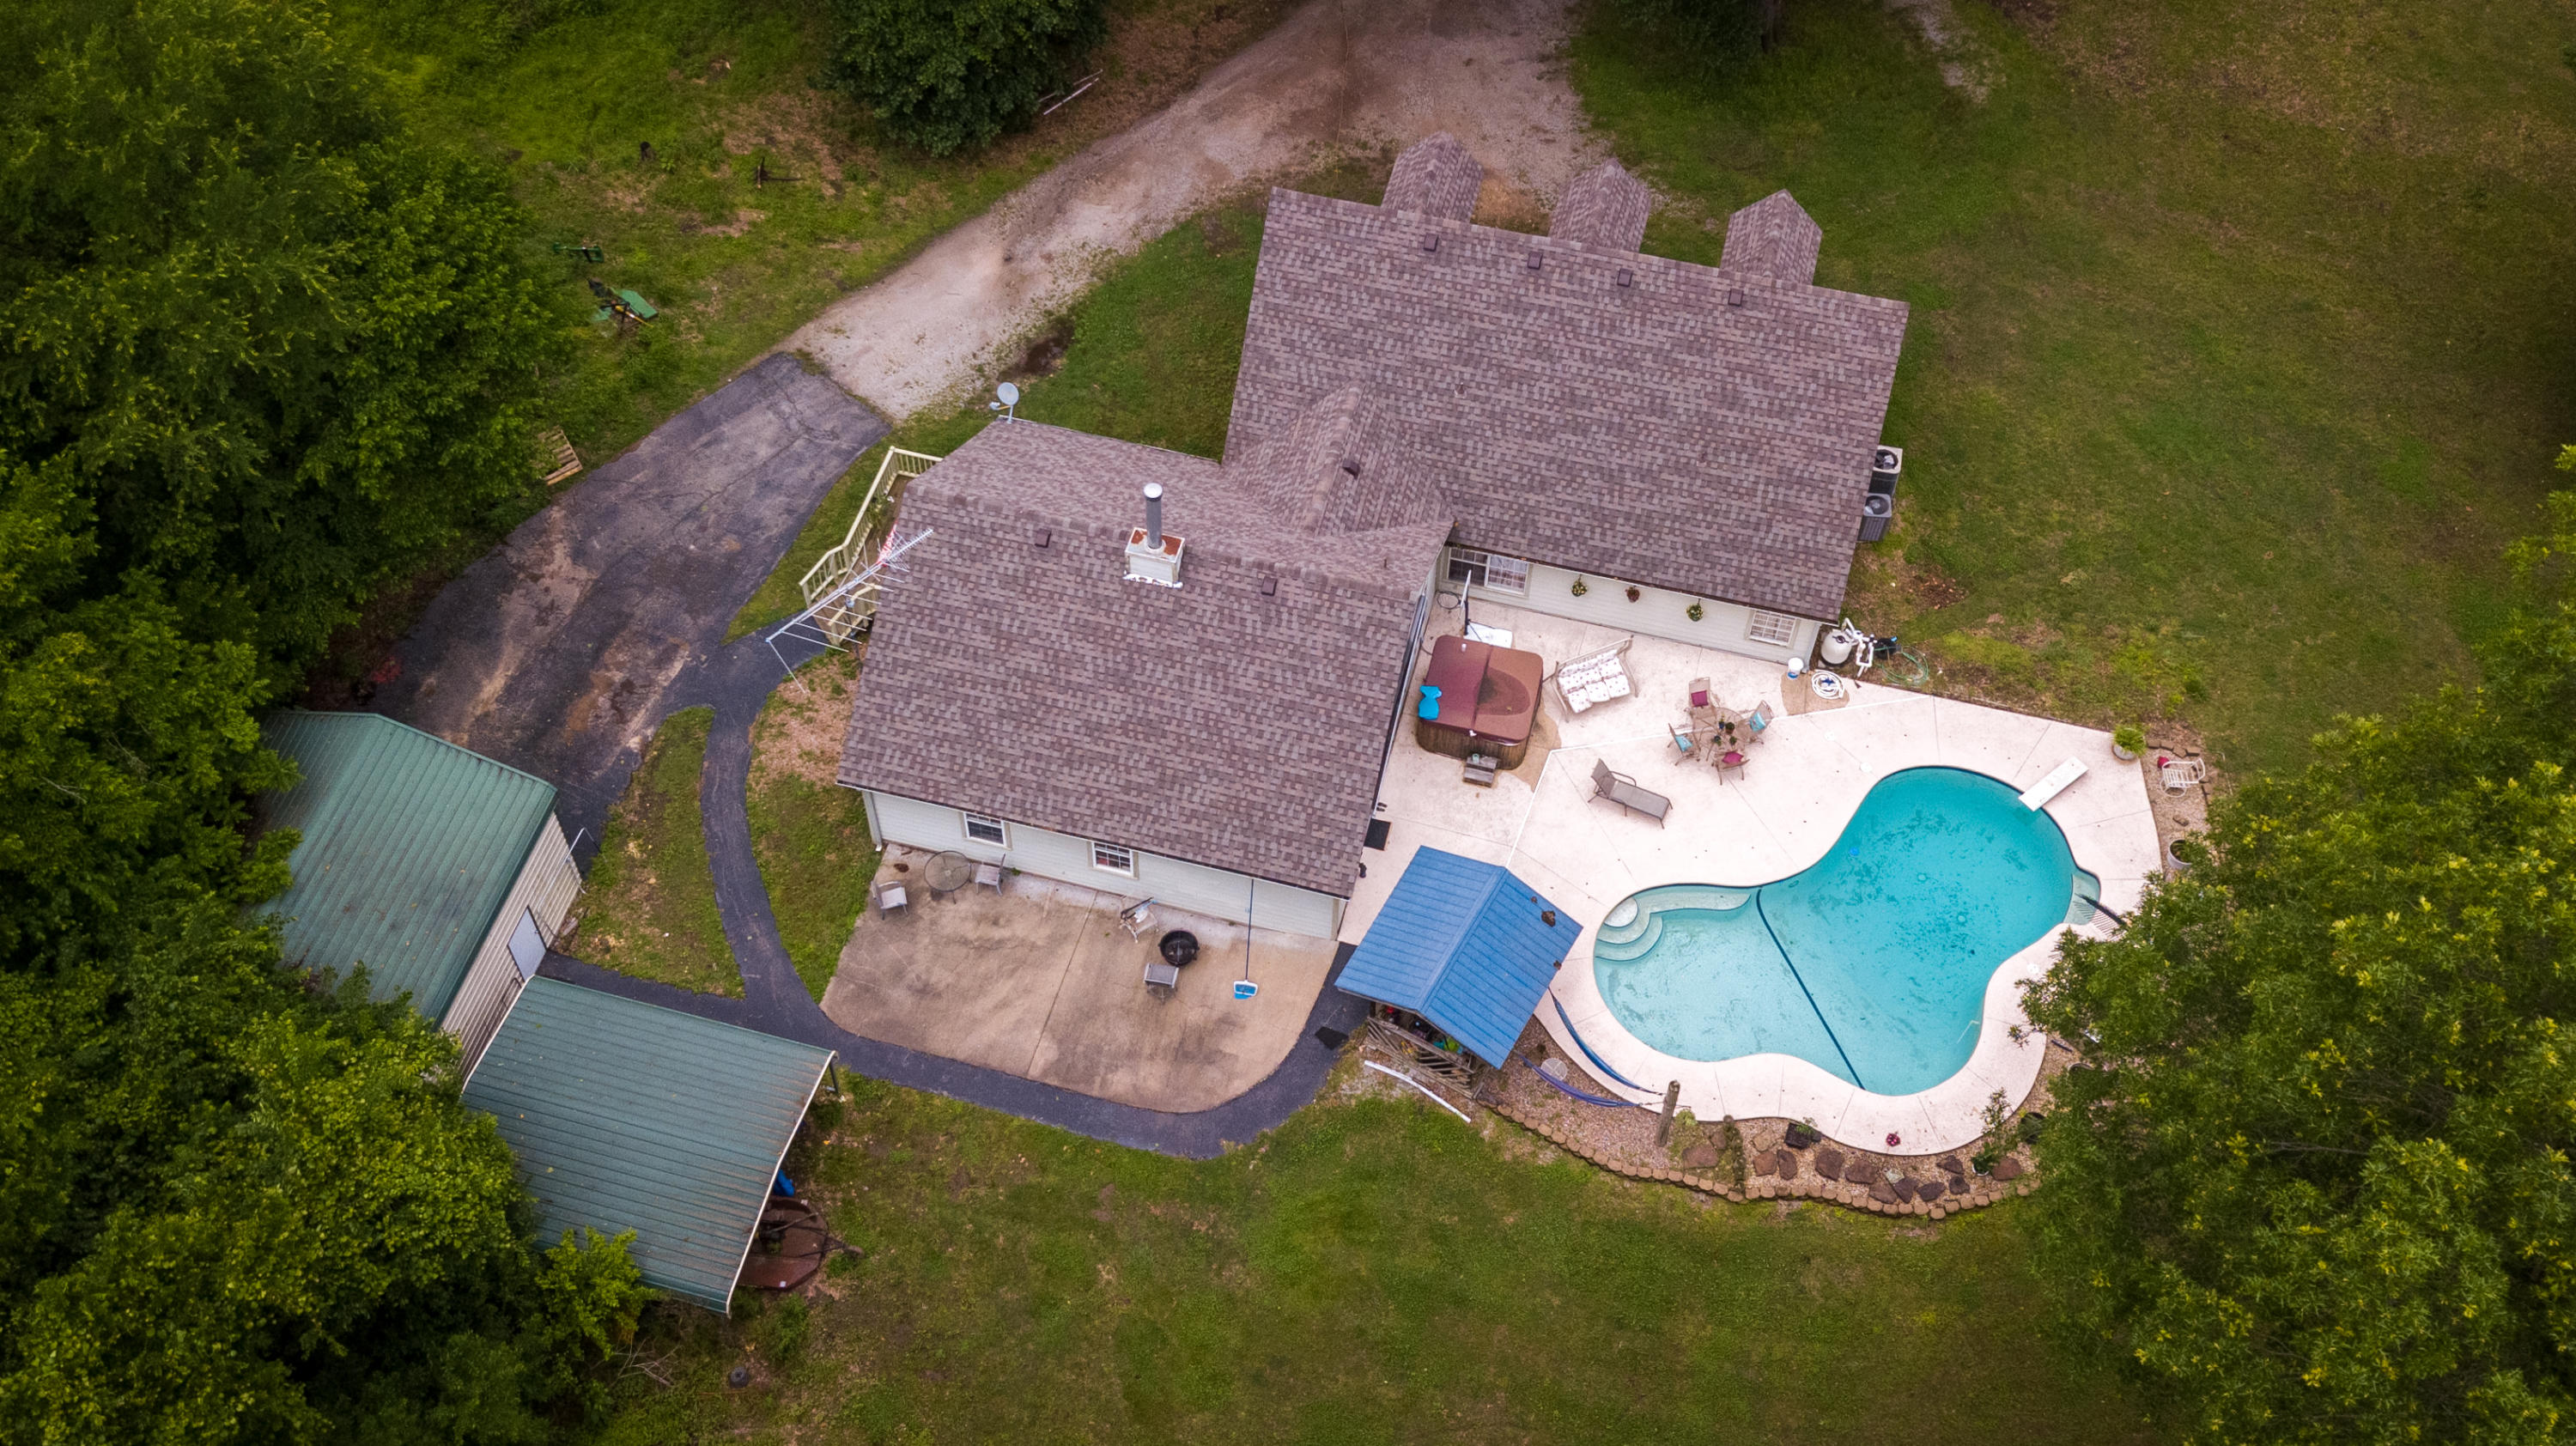 27405 S 626 Rd, Grove, OK 74344 - Top View of Property